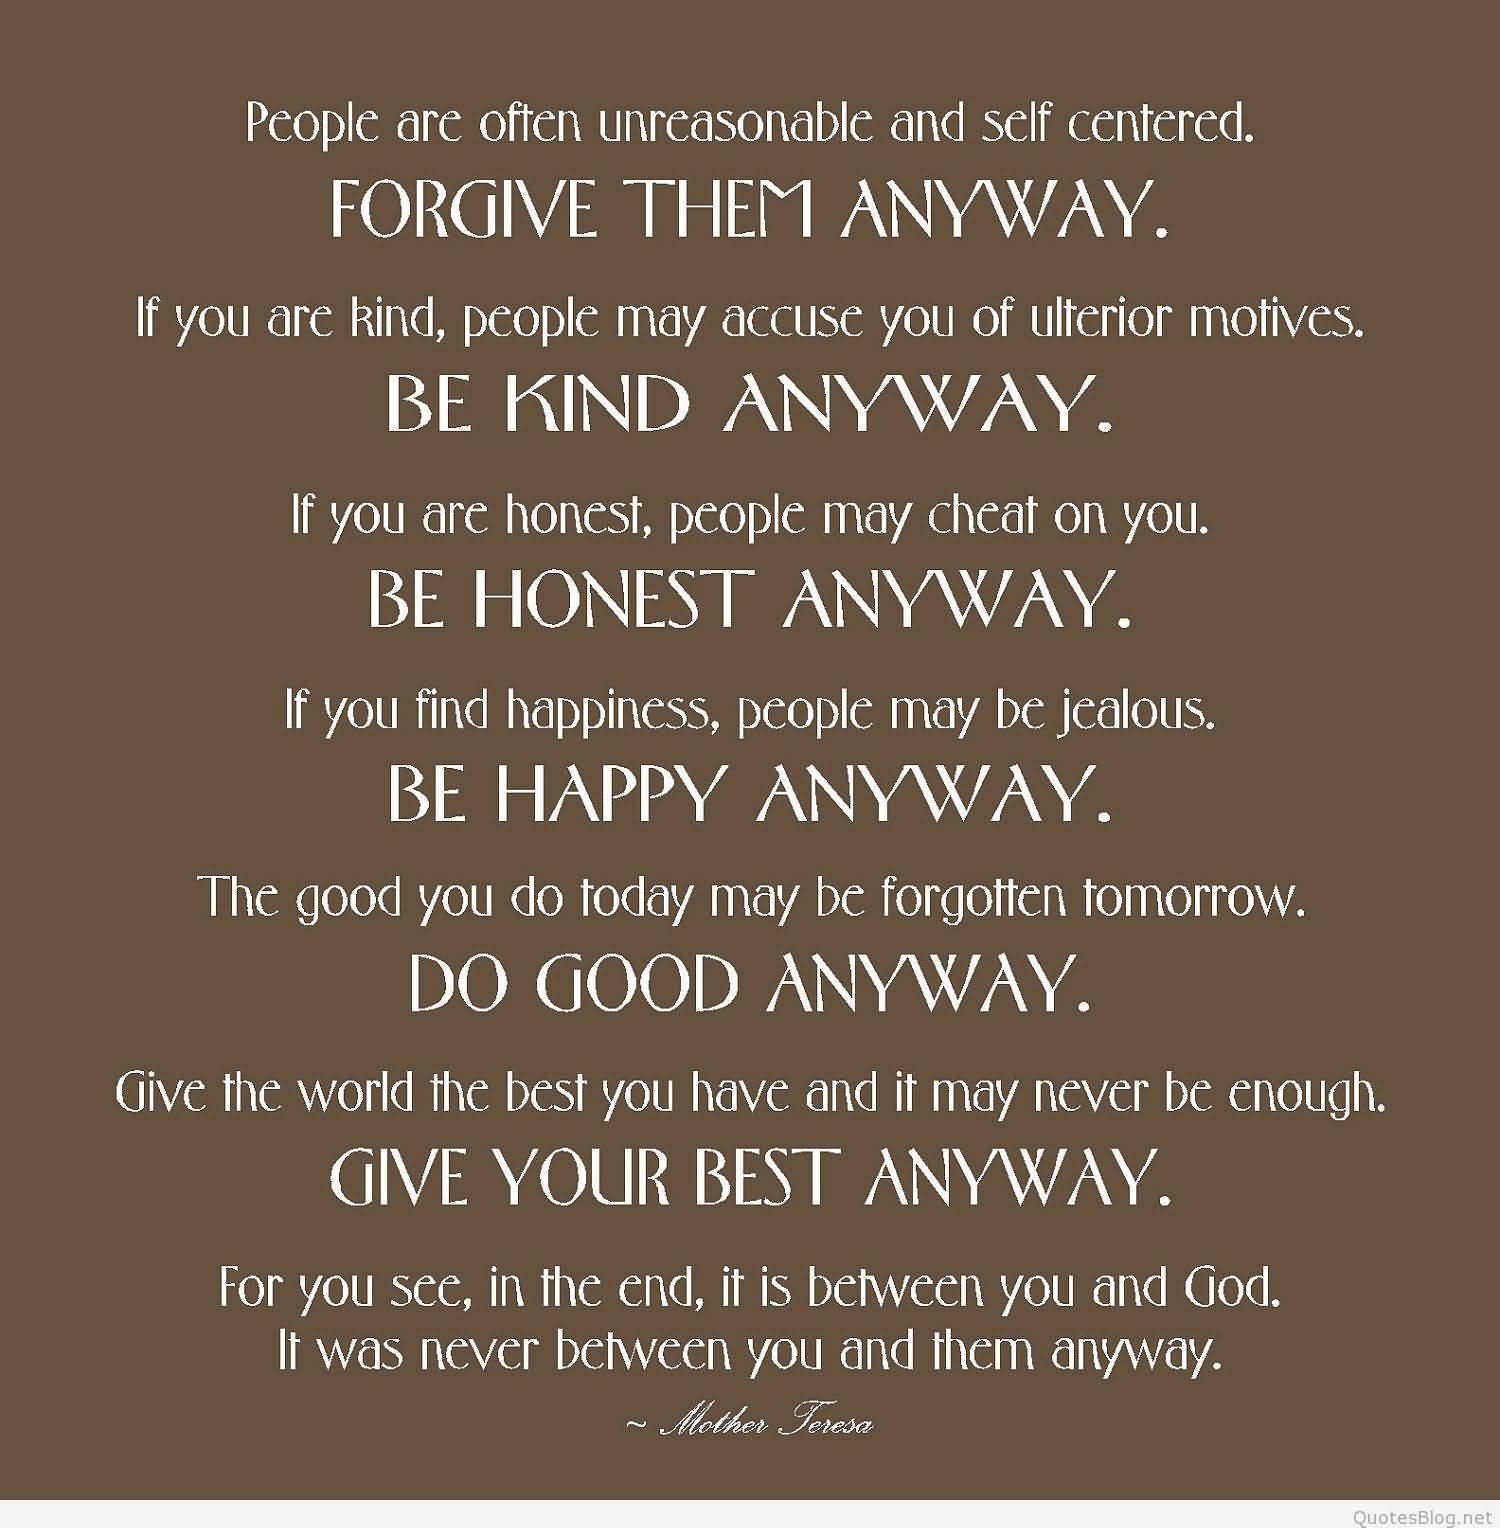 Love Quotes For Mother Mother Teresa Quotes Love Anyway 08  Quotesbae